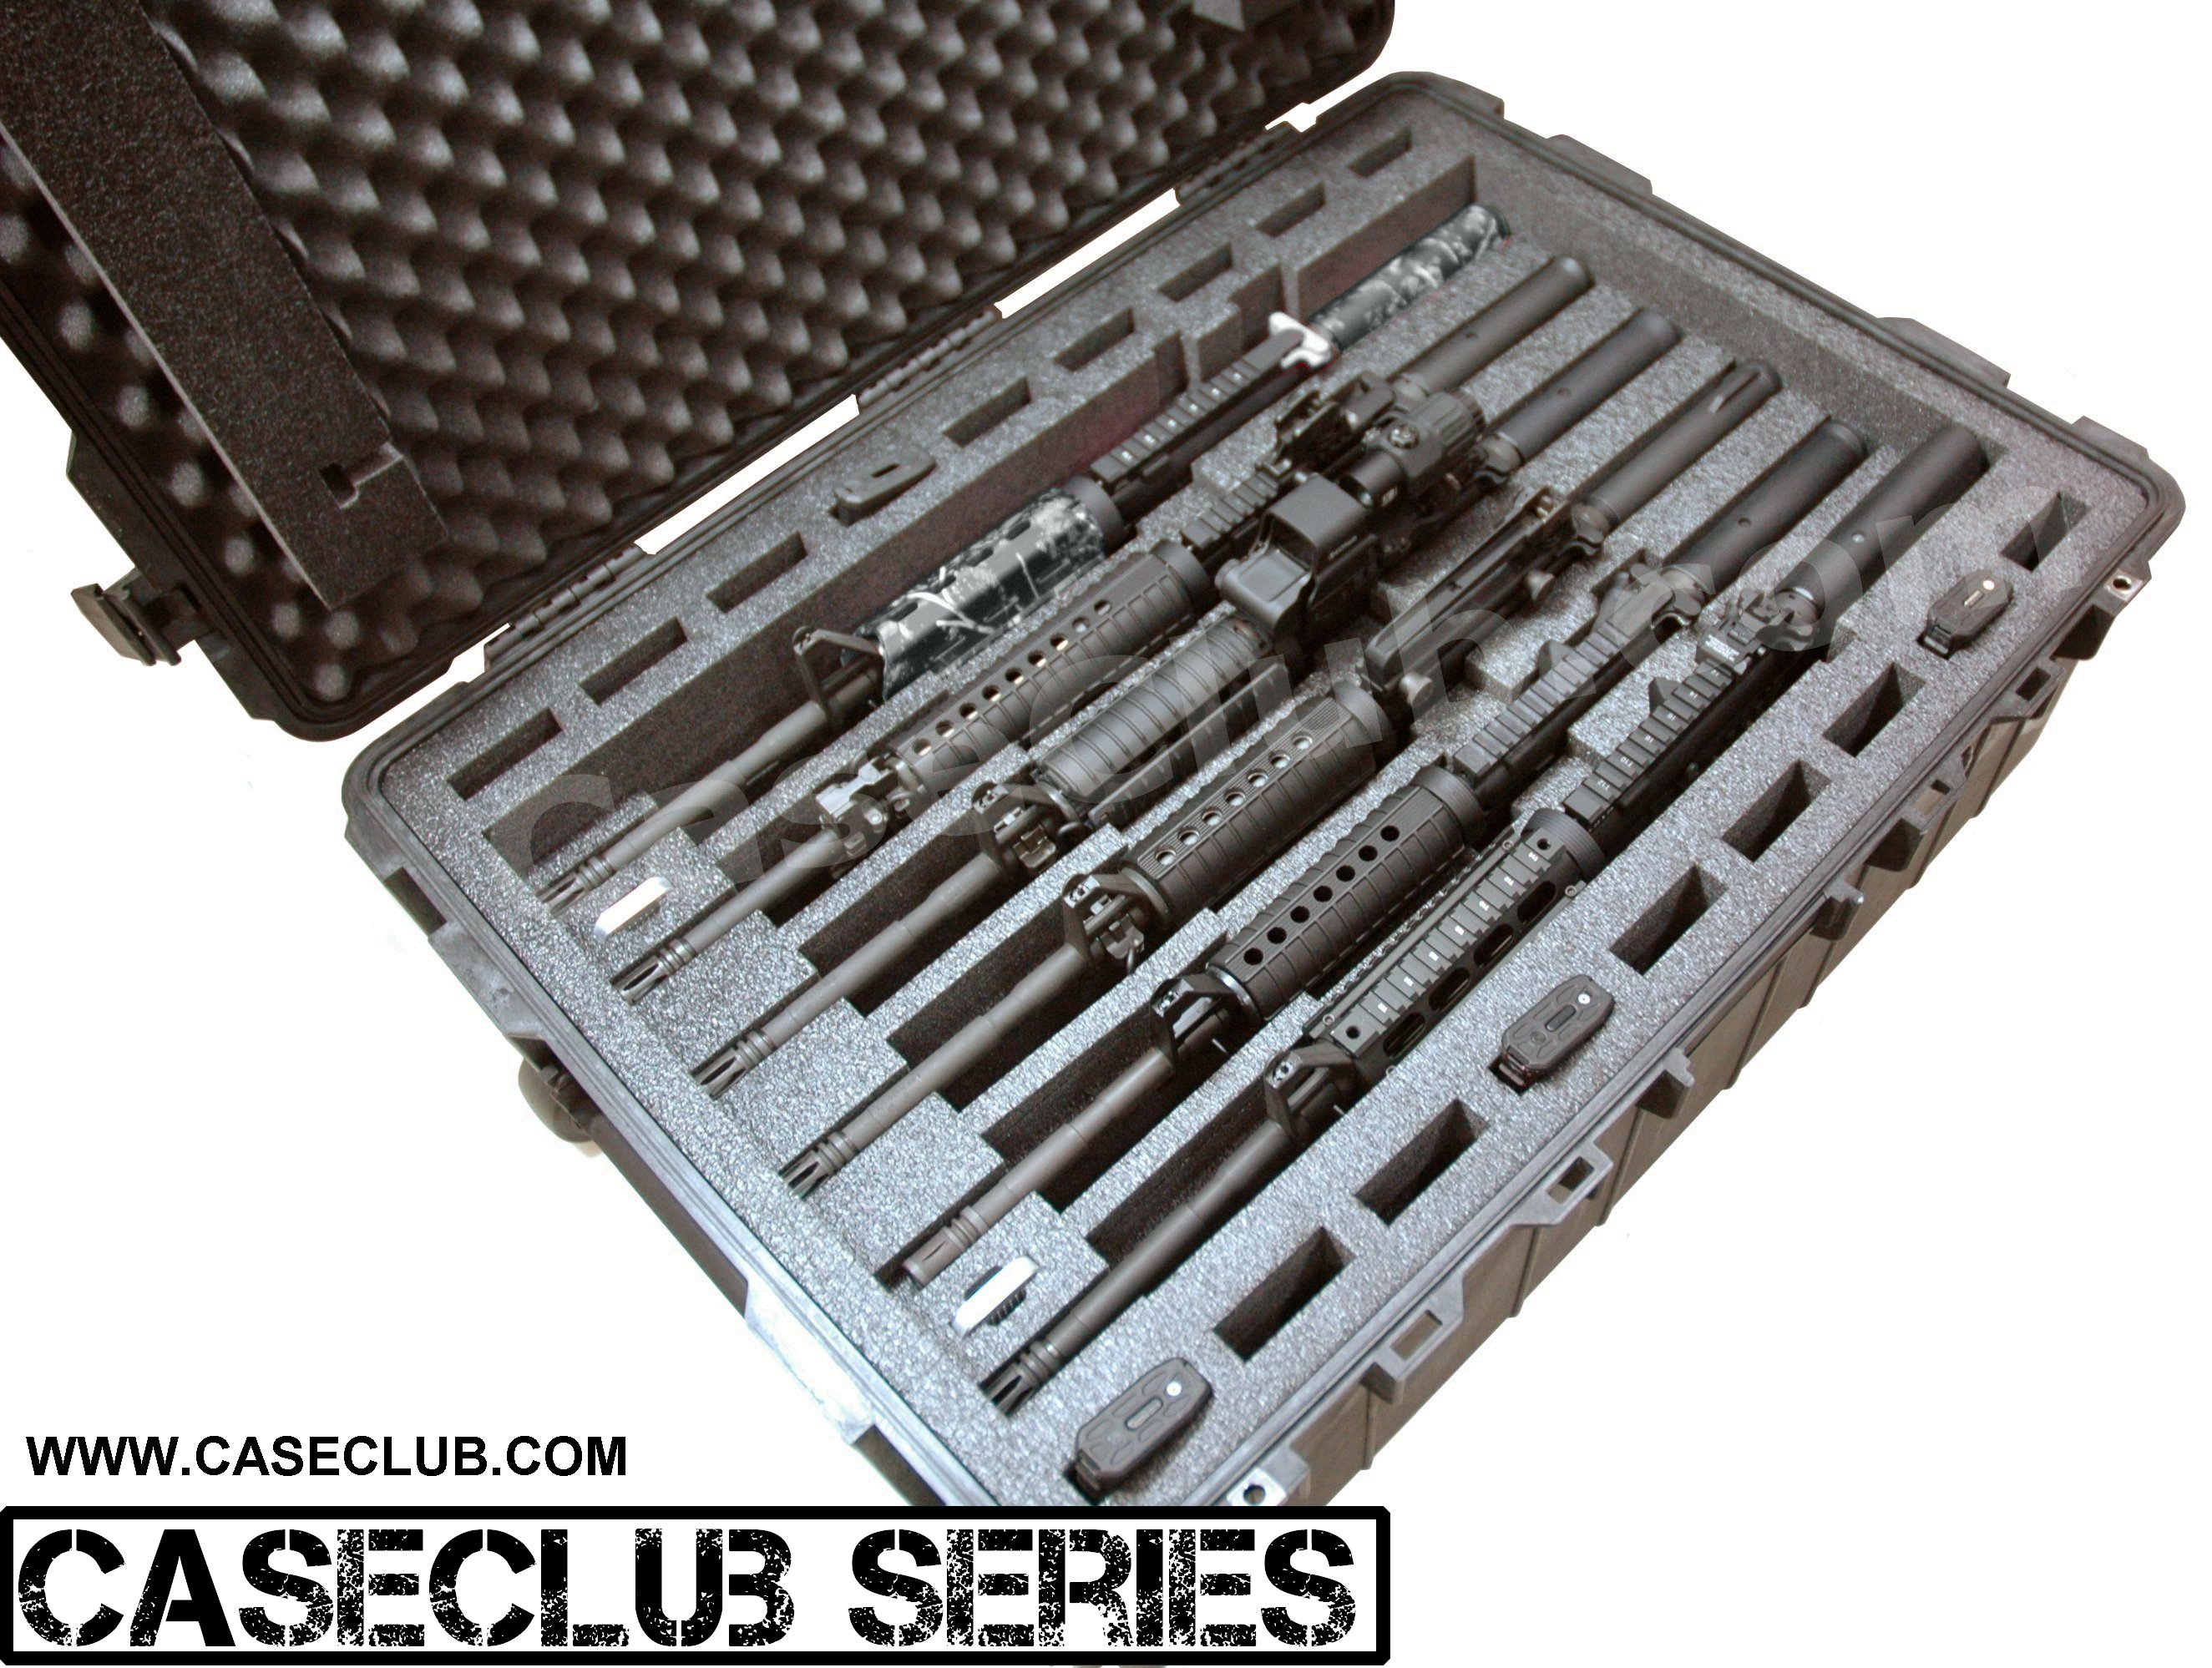 Pelican™ 1730 Case Custom Foam Example: 6 AR15 Rifle Case